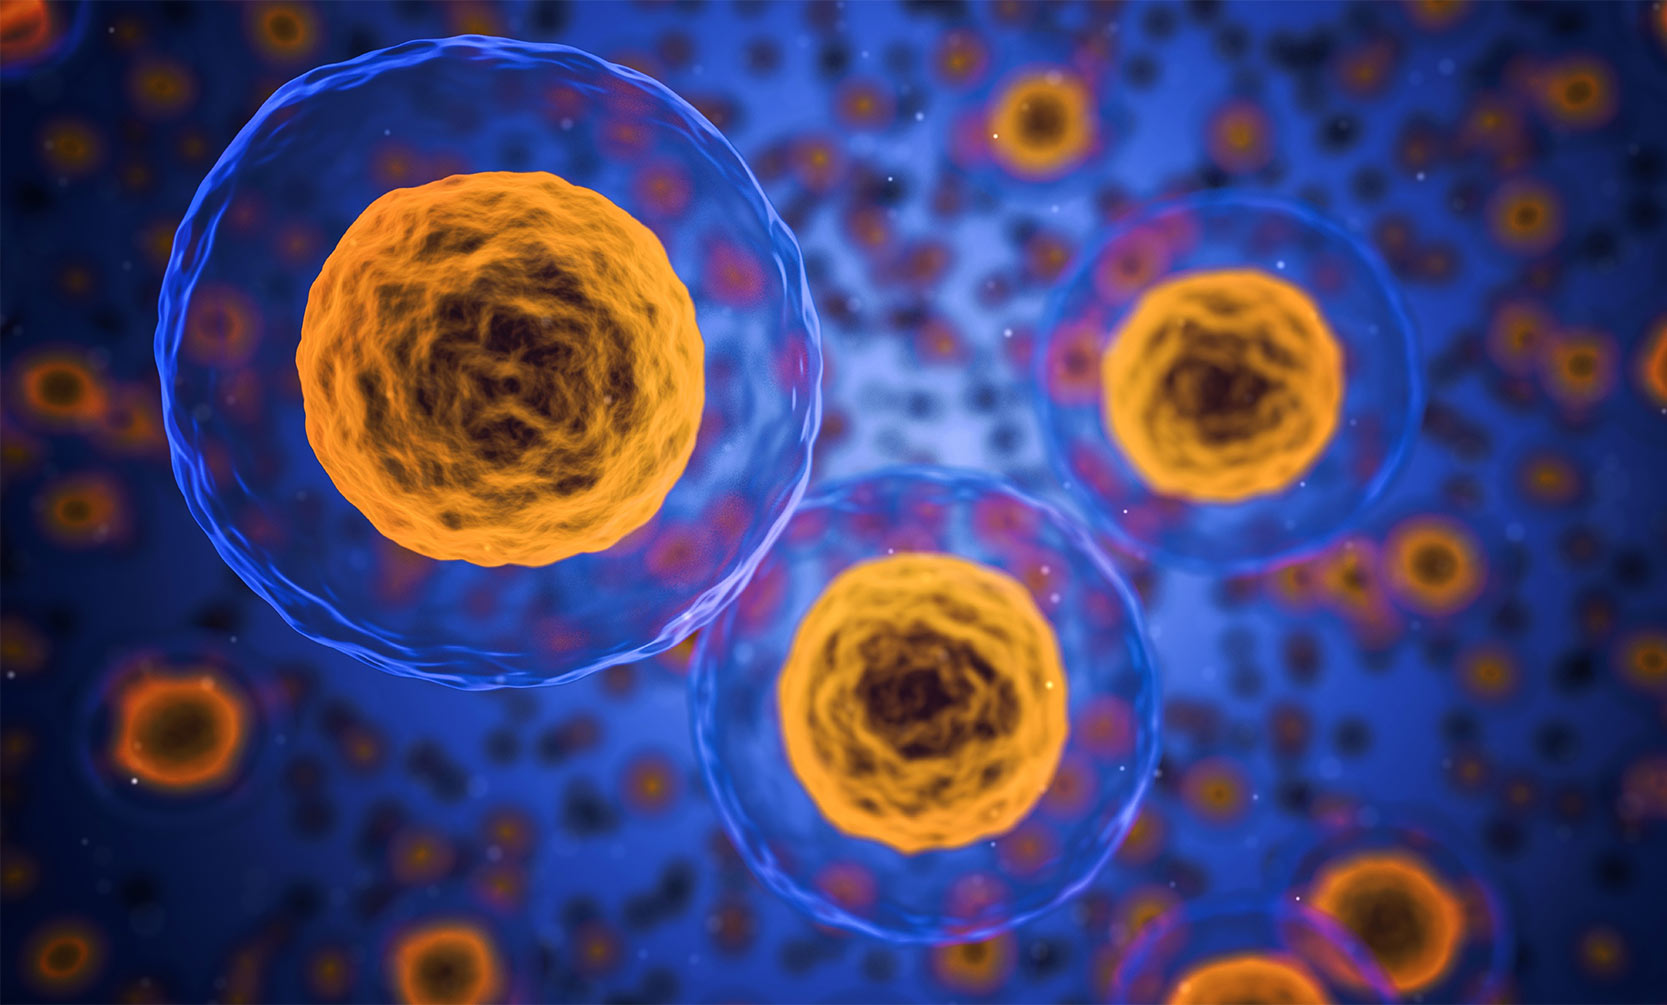 Artists rendering of cells on a blue background.